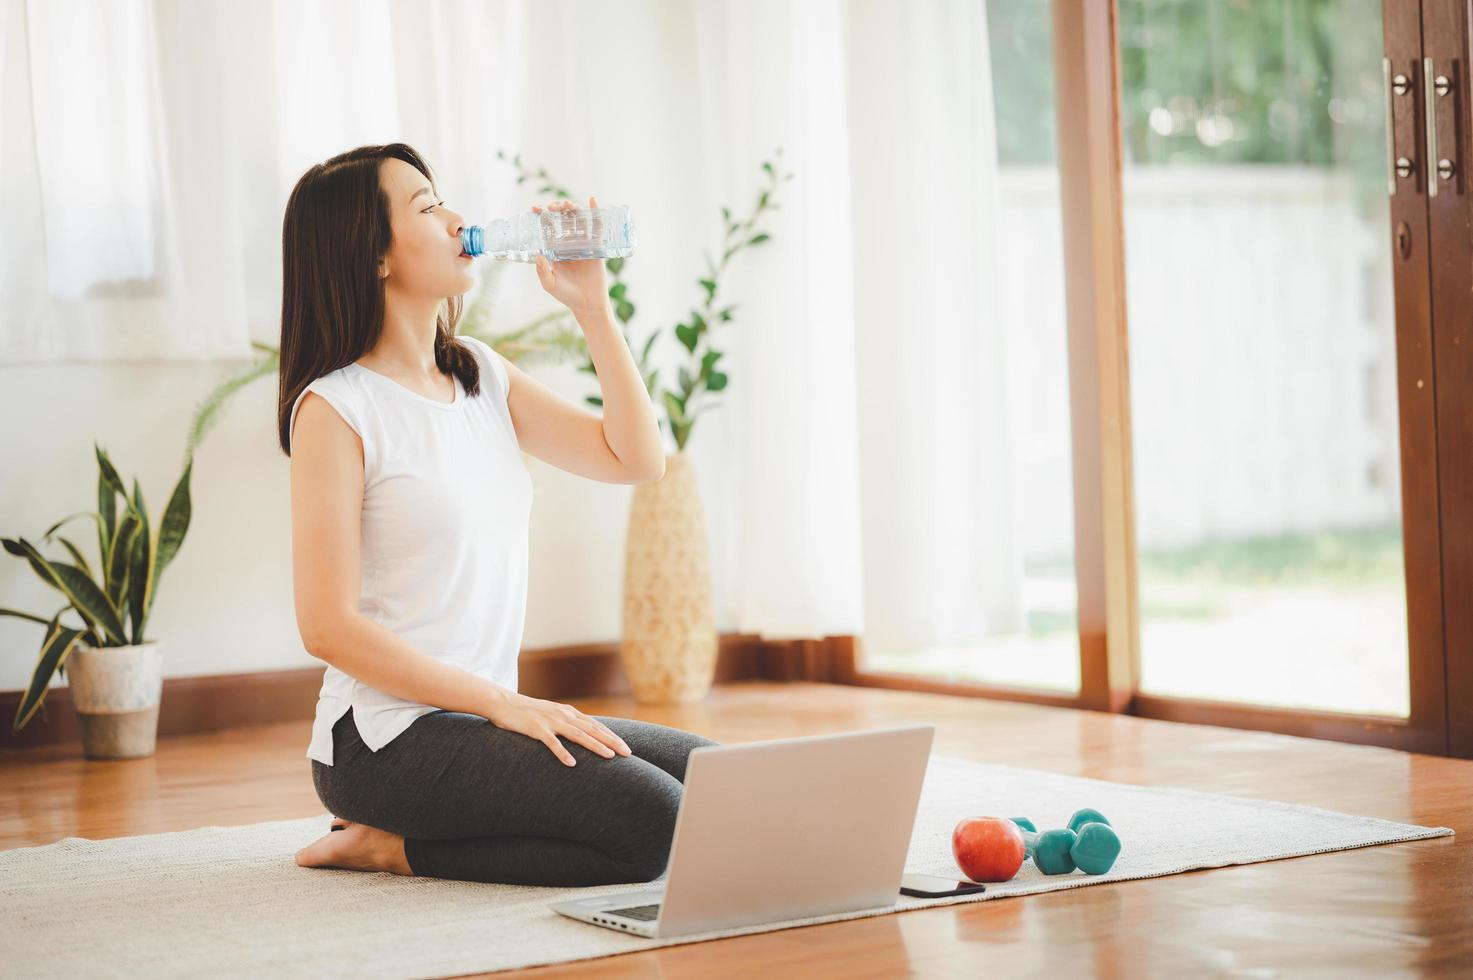 Woman drinking water while doing virtual workout photo